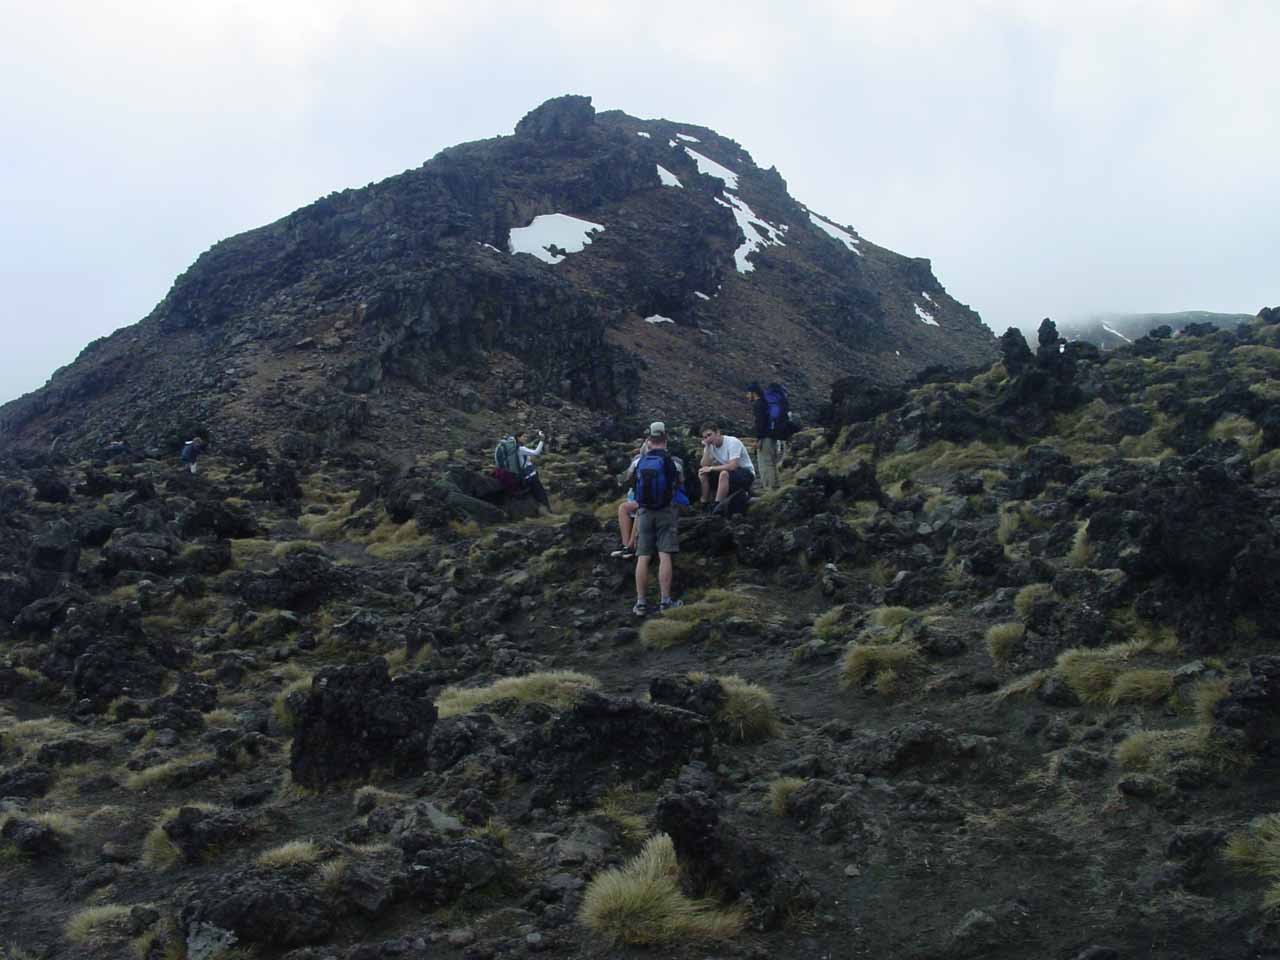 Going up higher on the brutal climb towards the South Crater